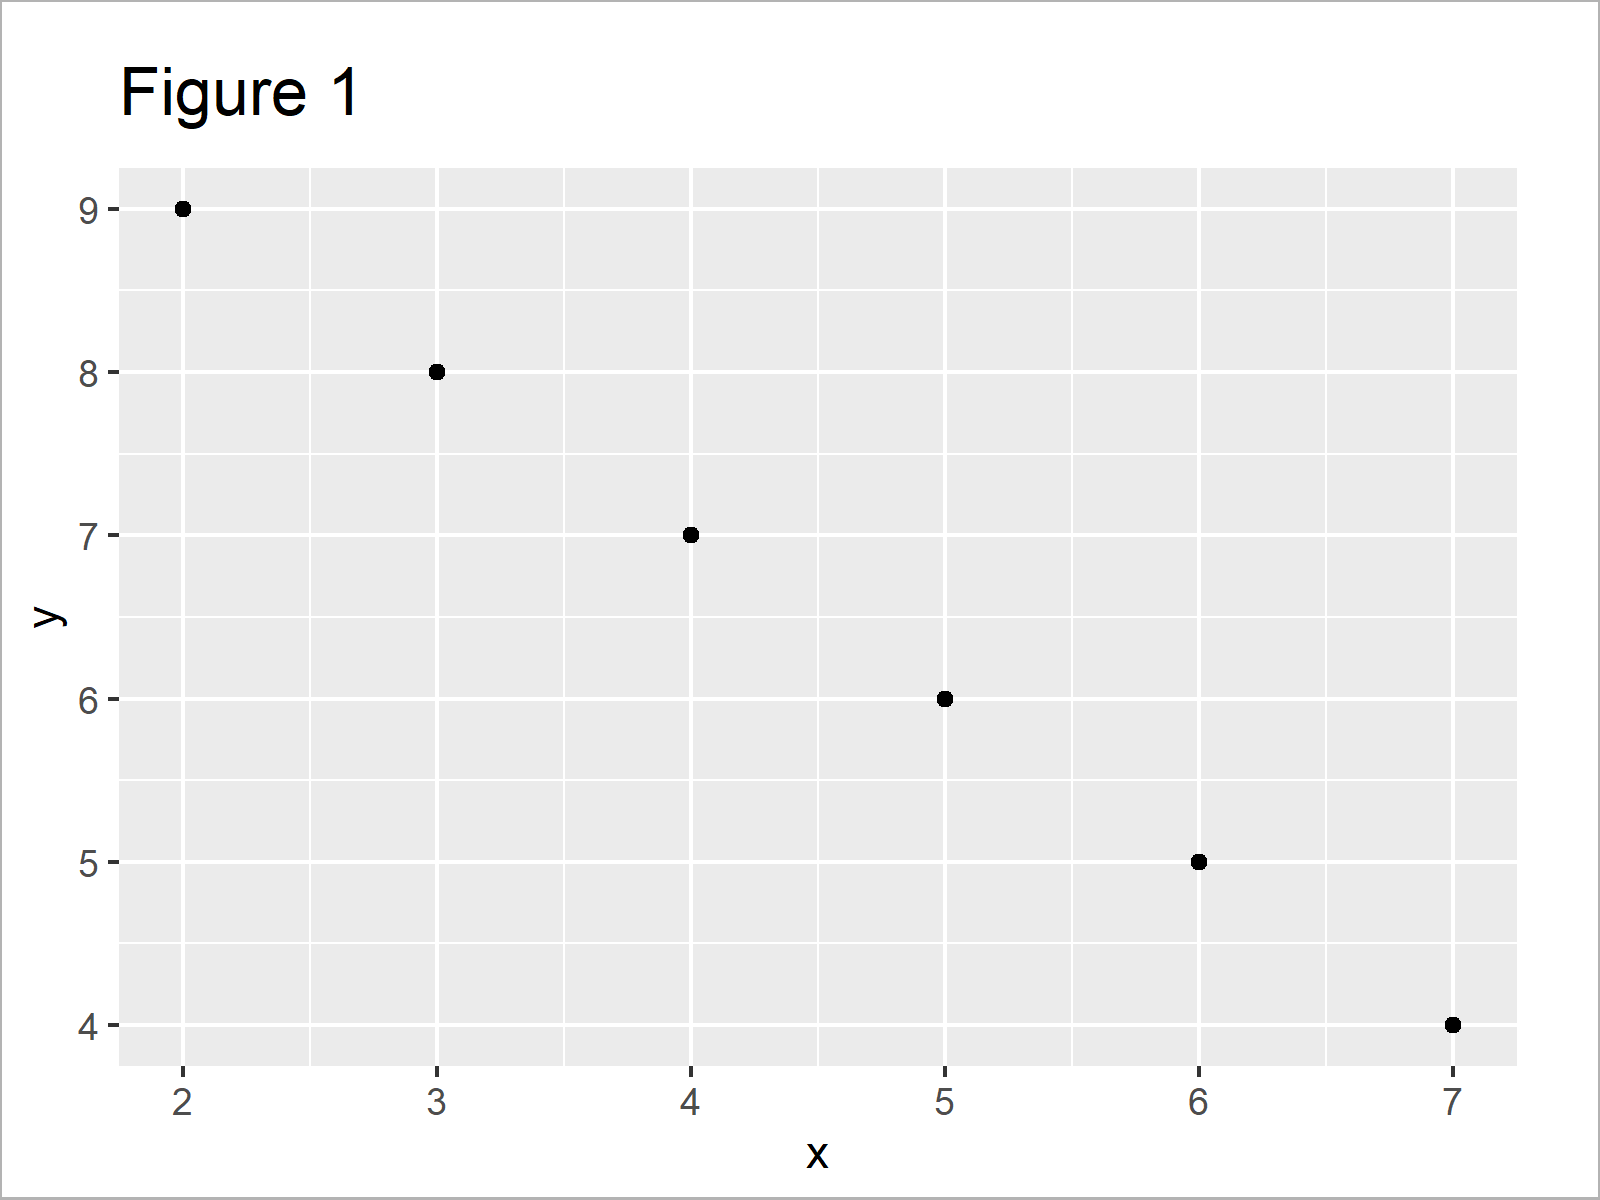 r graph figure 1 ggplot2 error must be data frame not integer r